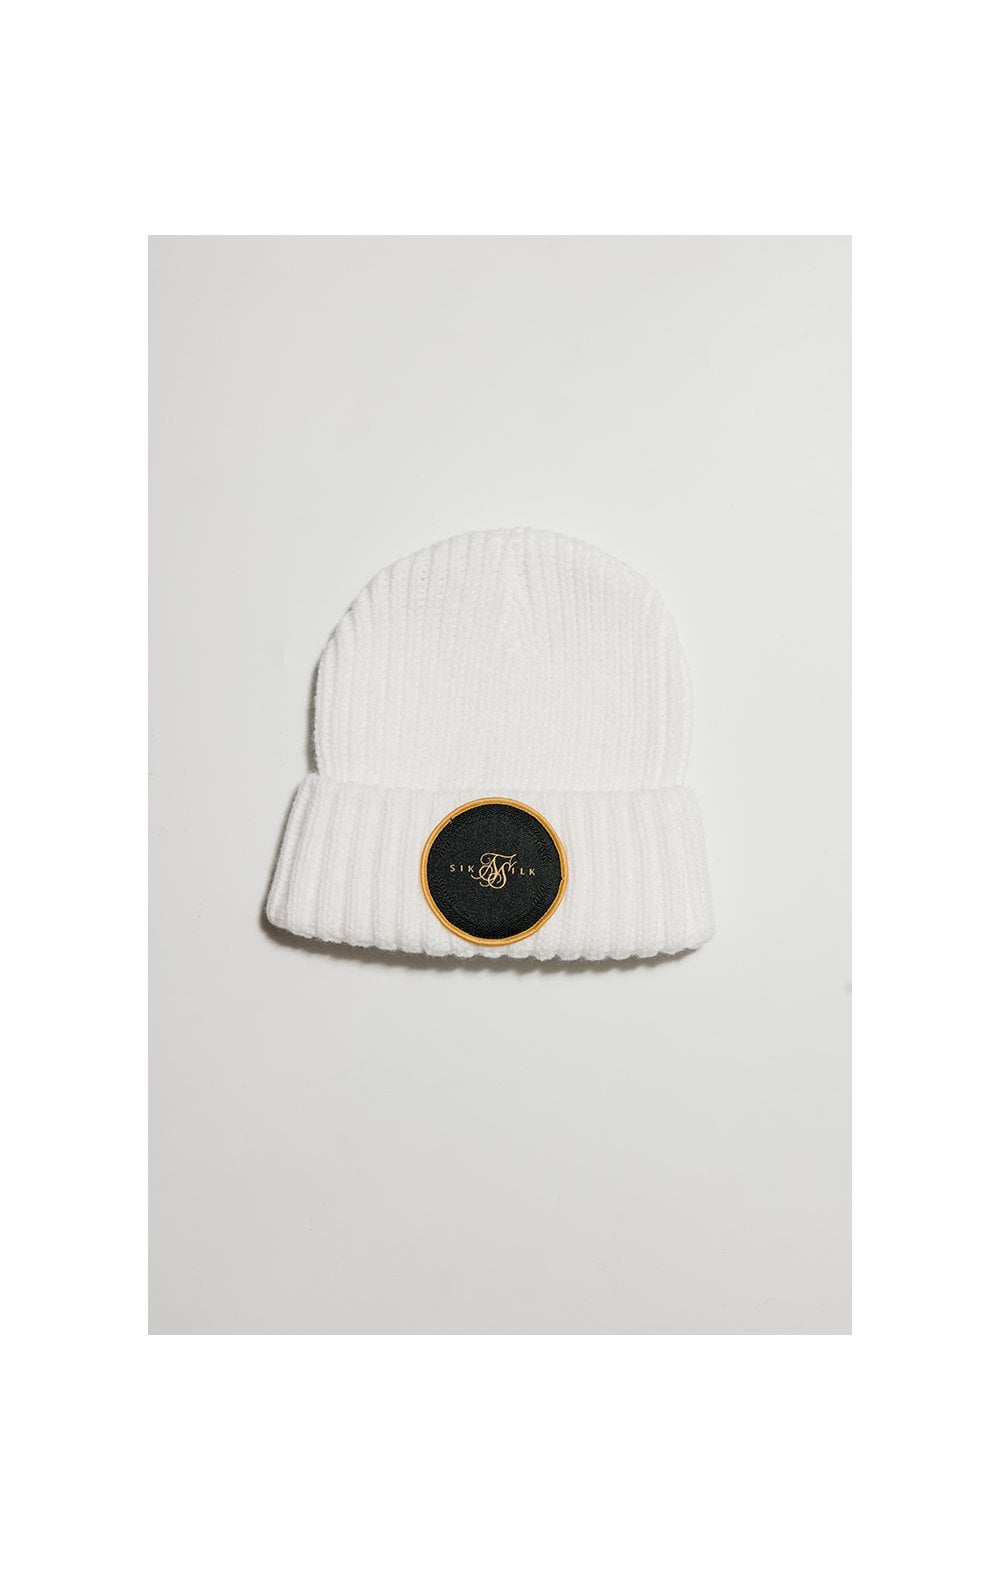 Load image into Gallery viewer, SikSilk Rib Cuff Beanie - White & Gold